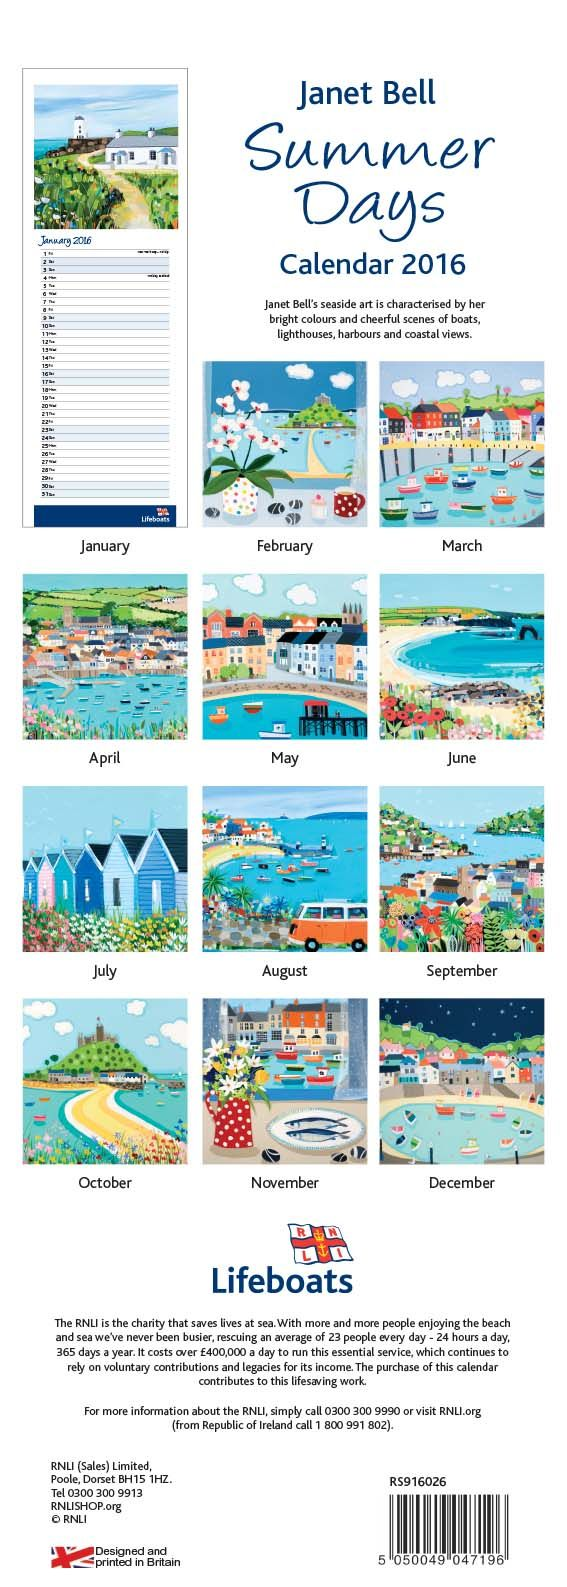 Summer Days Calendar 2016 - RNLI Christmas - Shop by Category - Calendars and Diaries UK